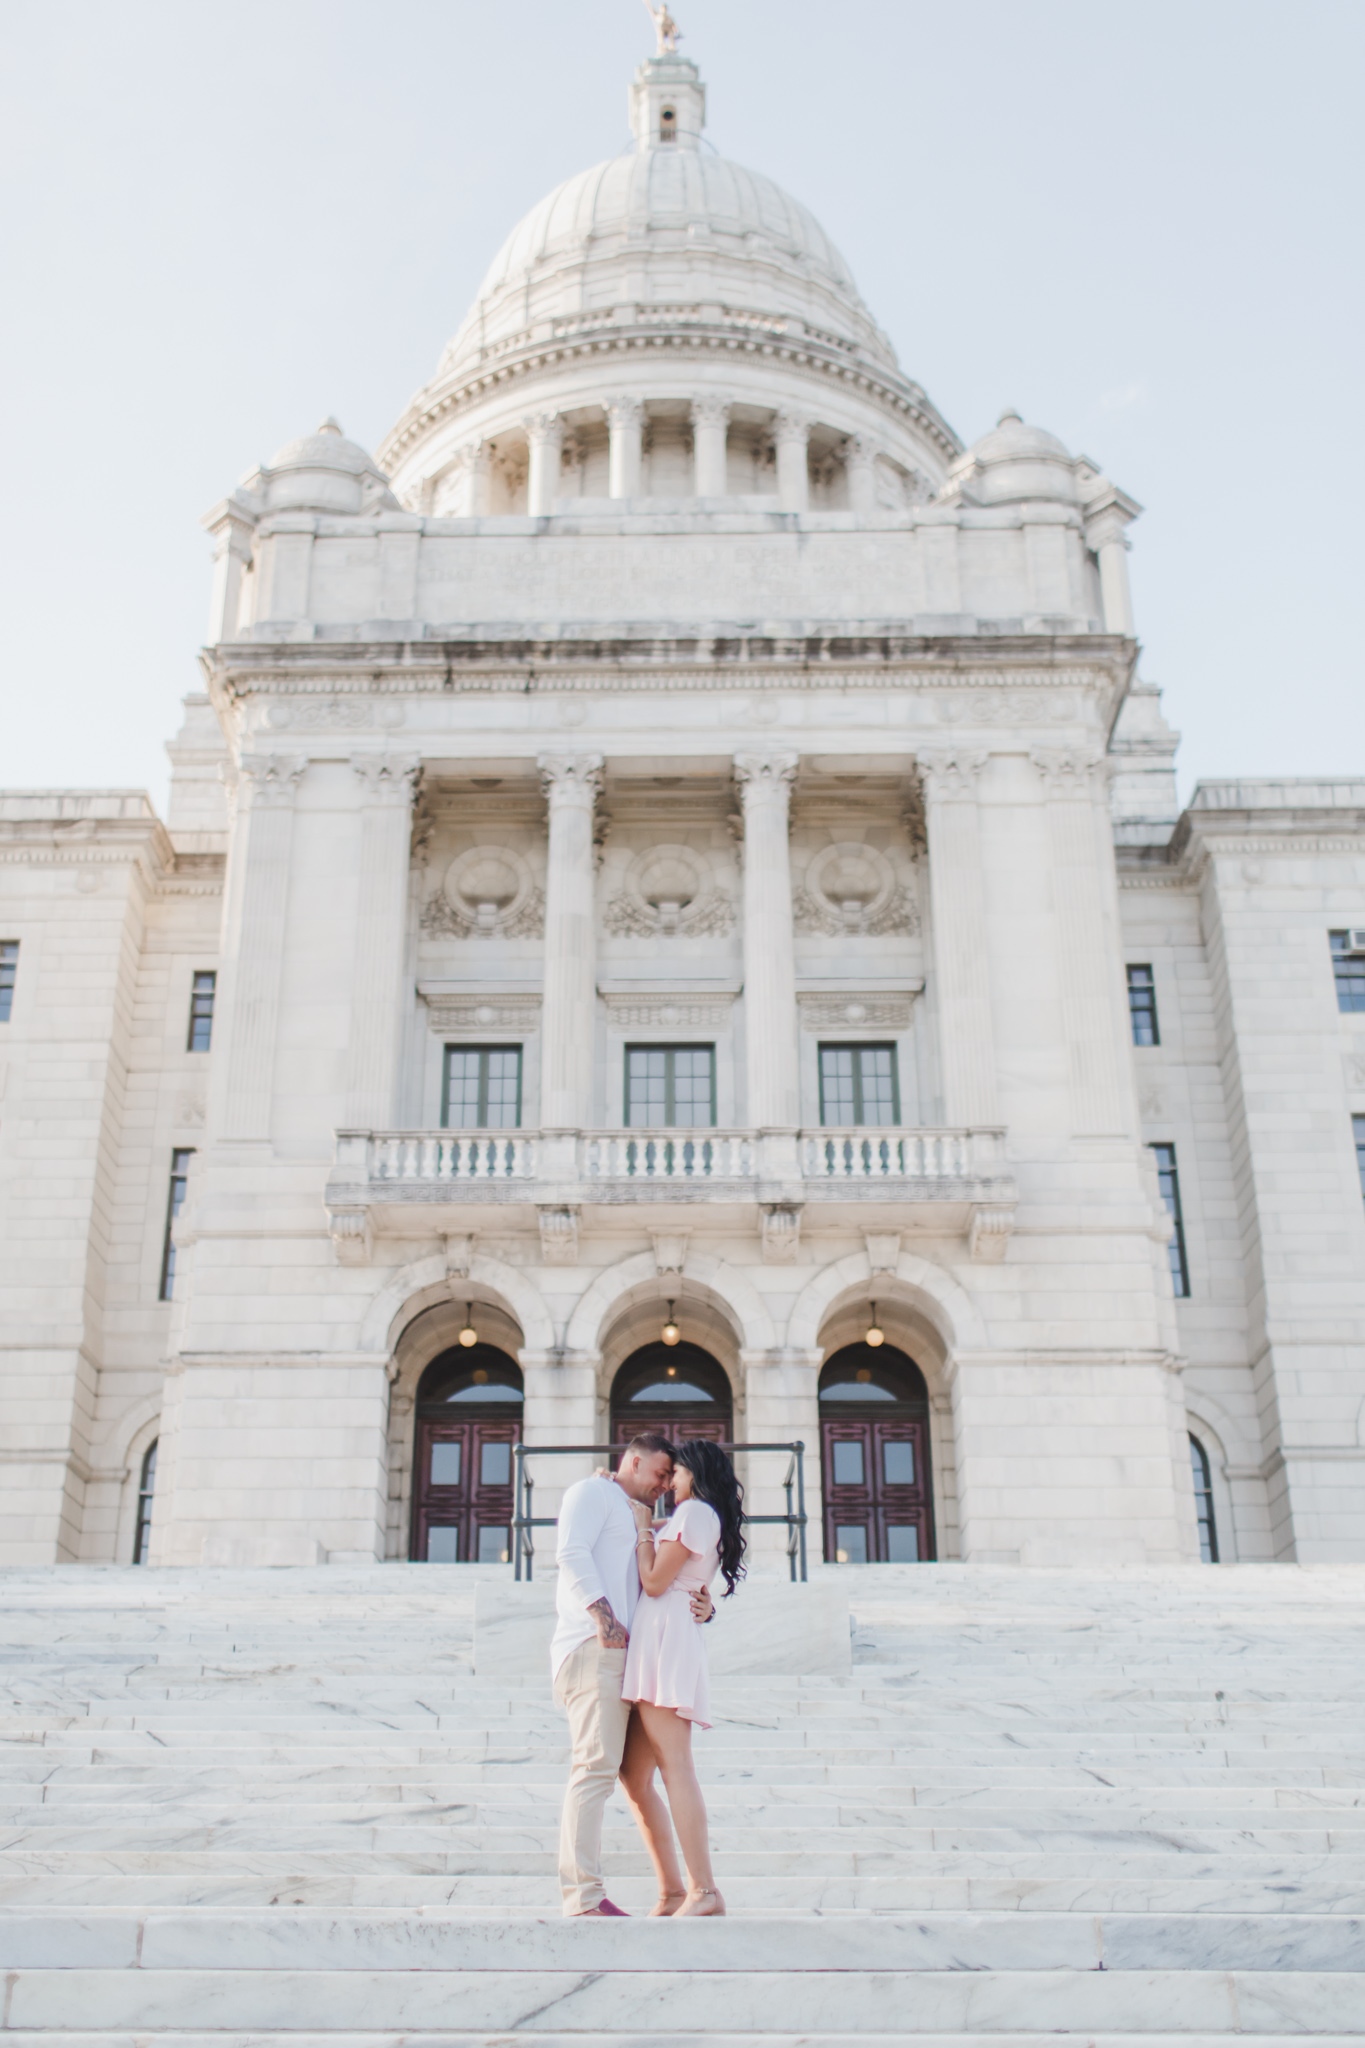 engagement_wedding_photographer_jillian_rollins_photography-93.jpg